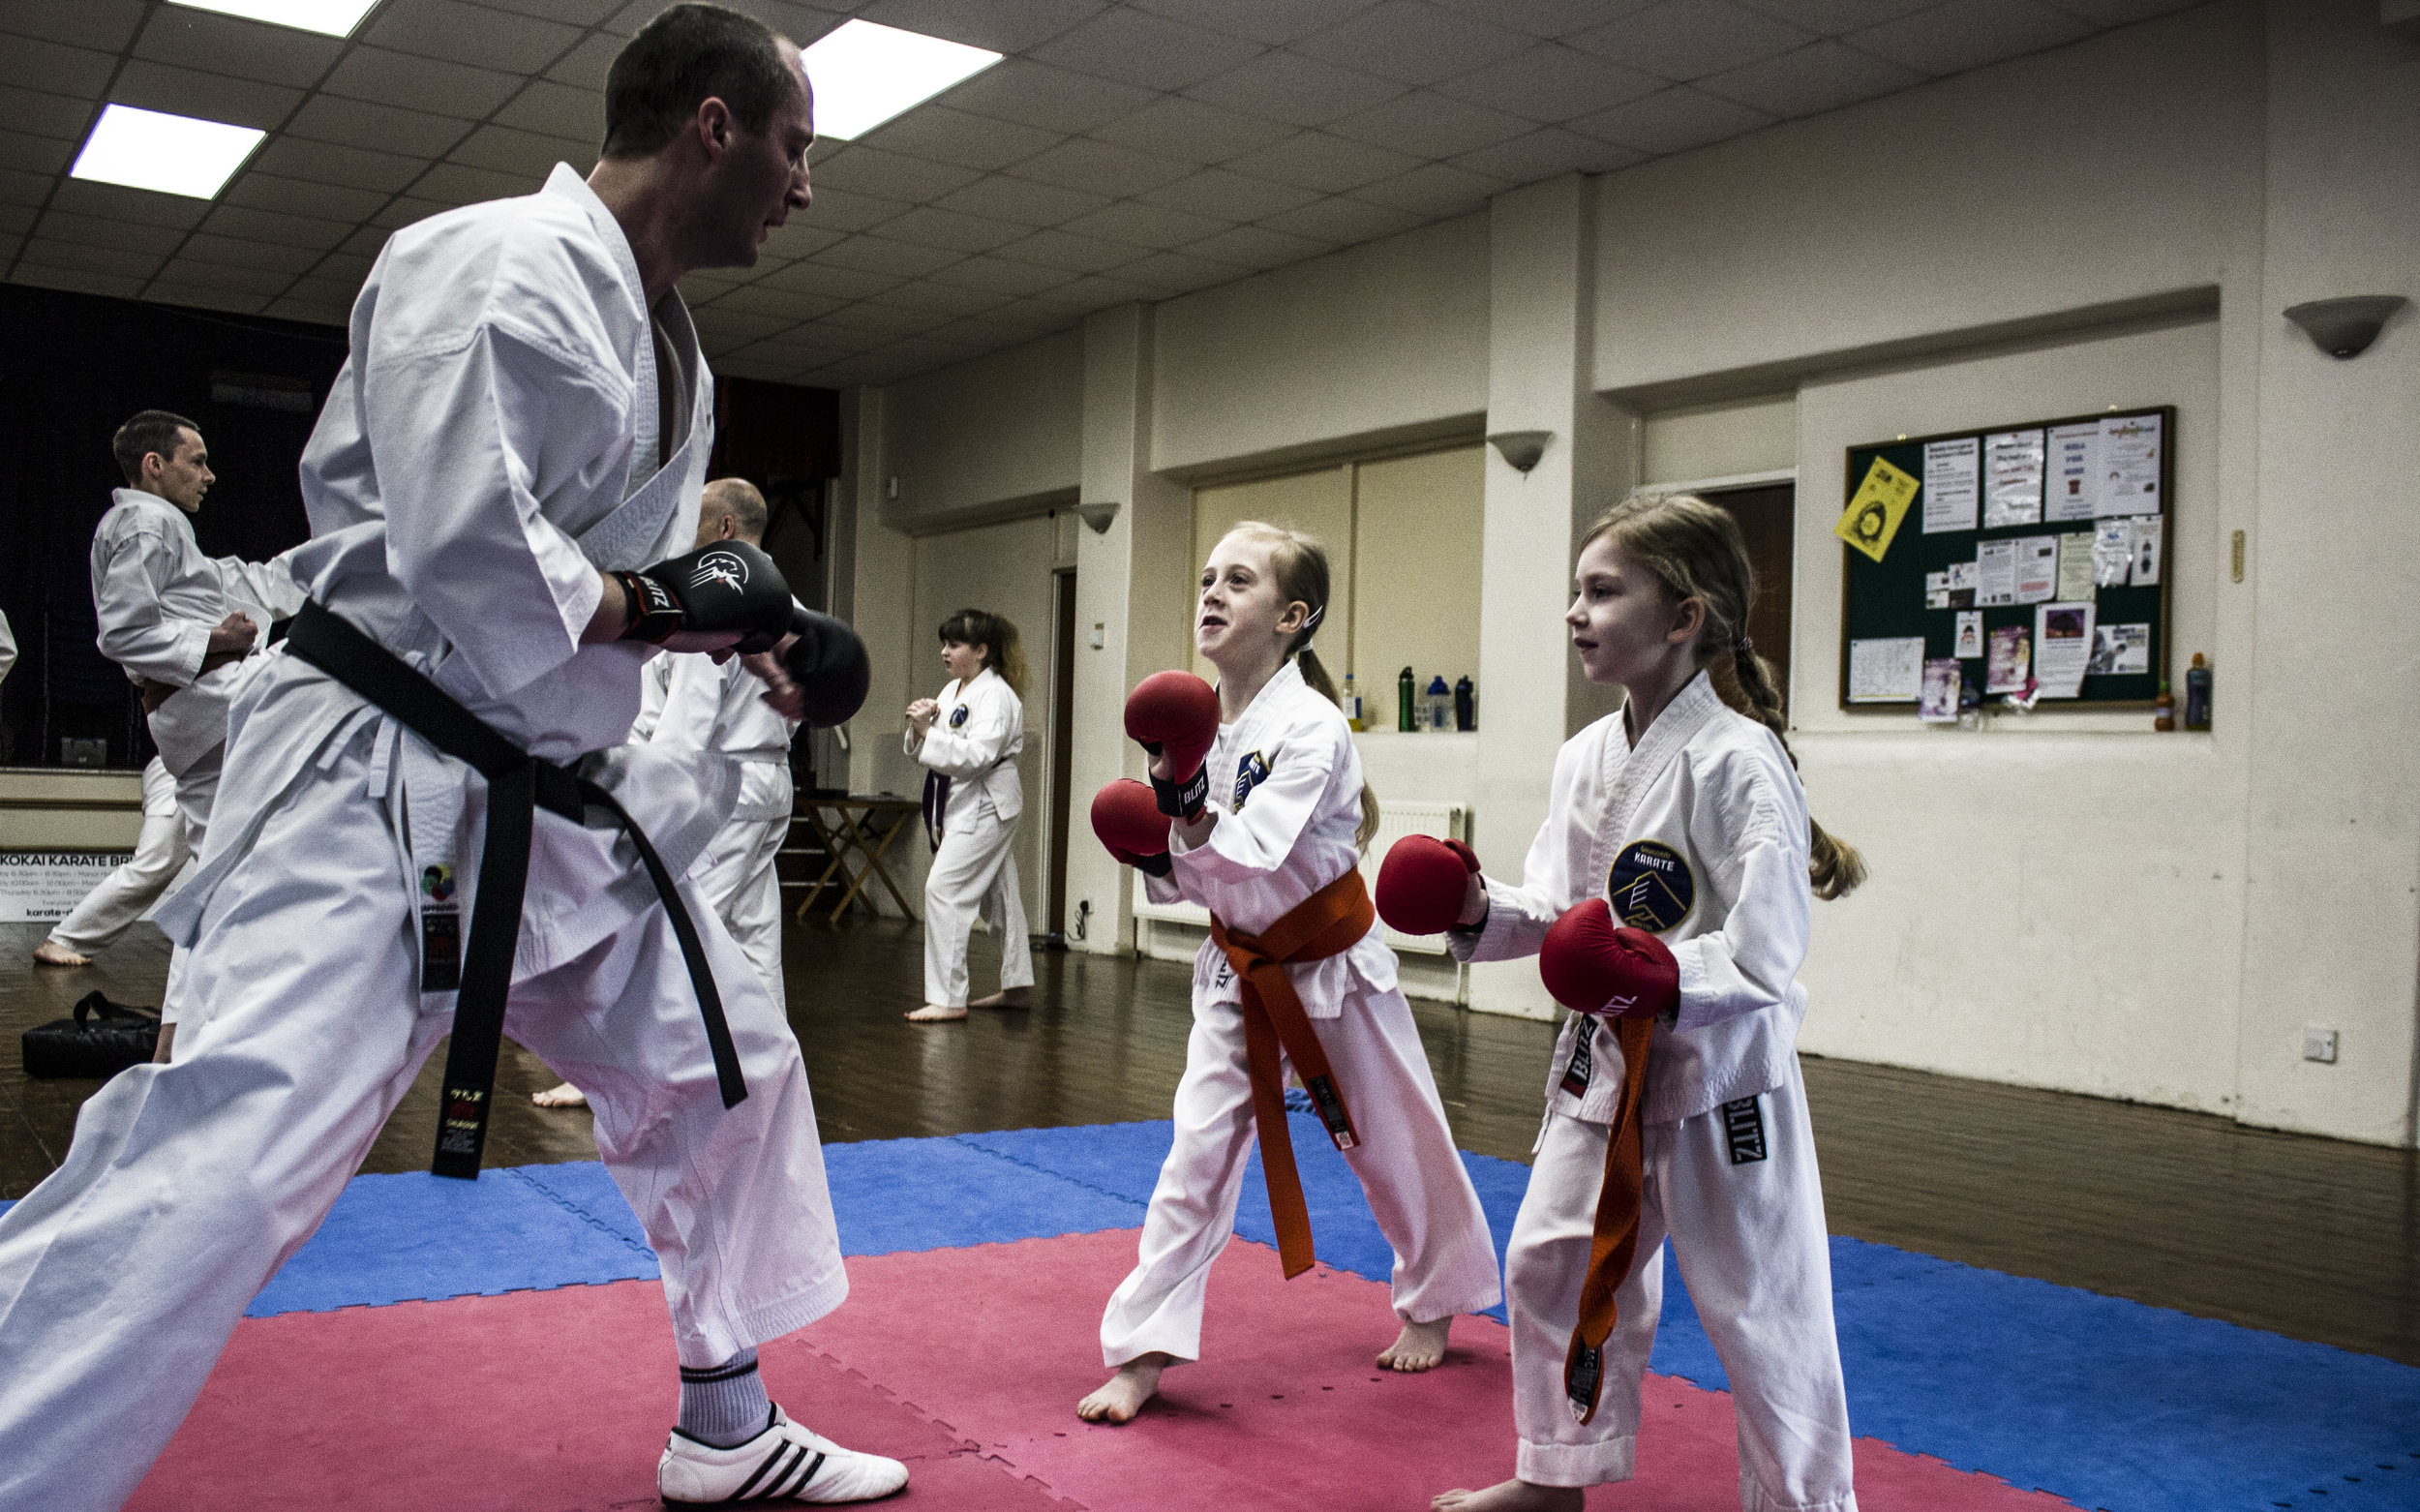 Sensei Jozef Margetin 2nd Dan (Former Slovakian kata and kumite Champion) coaches our young students in kumite